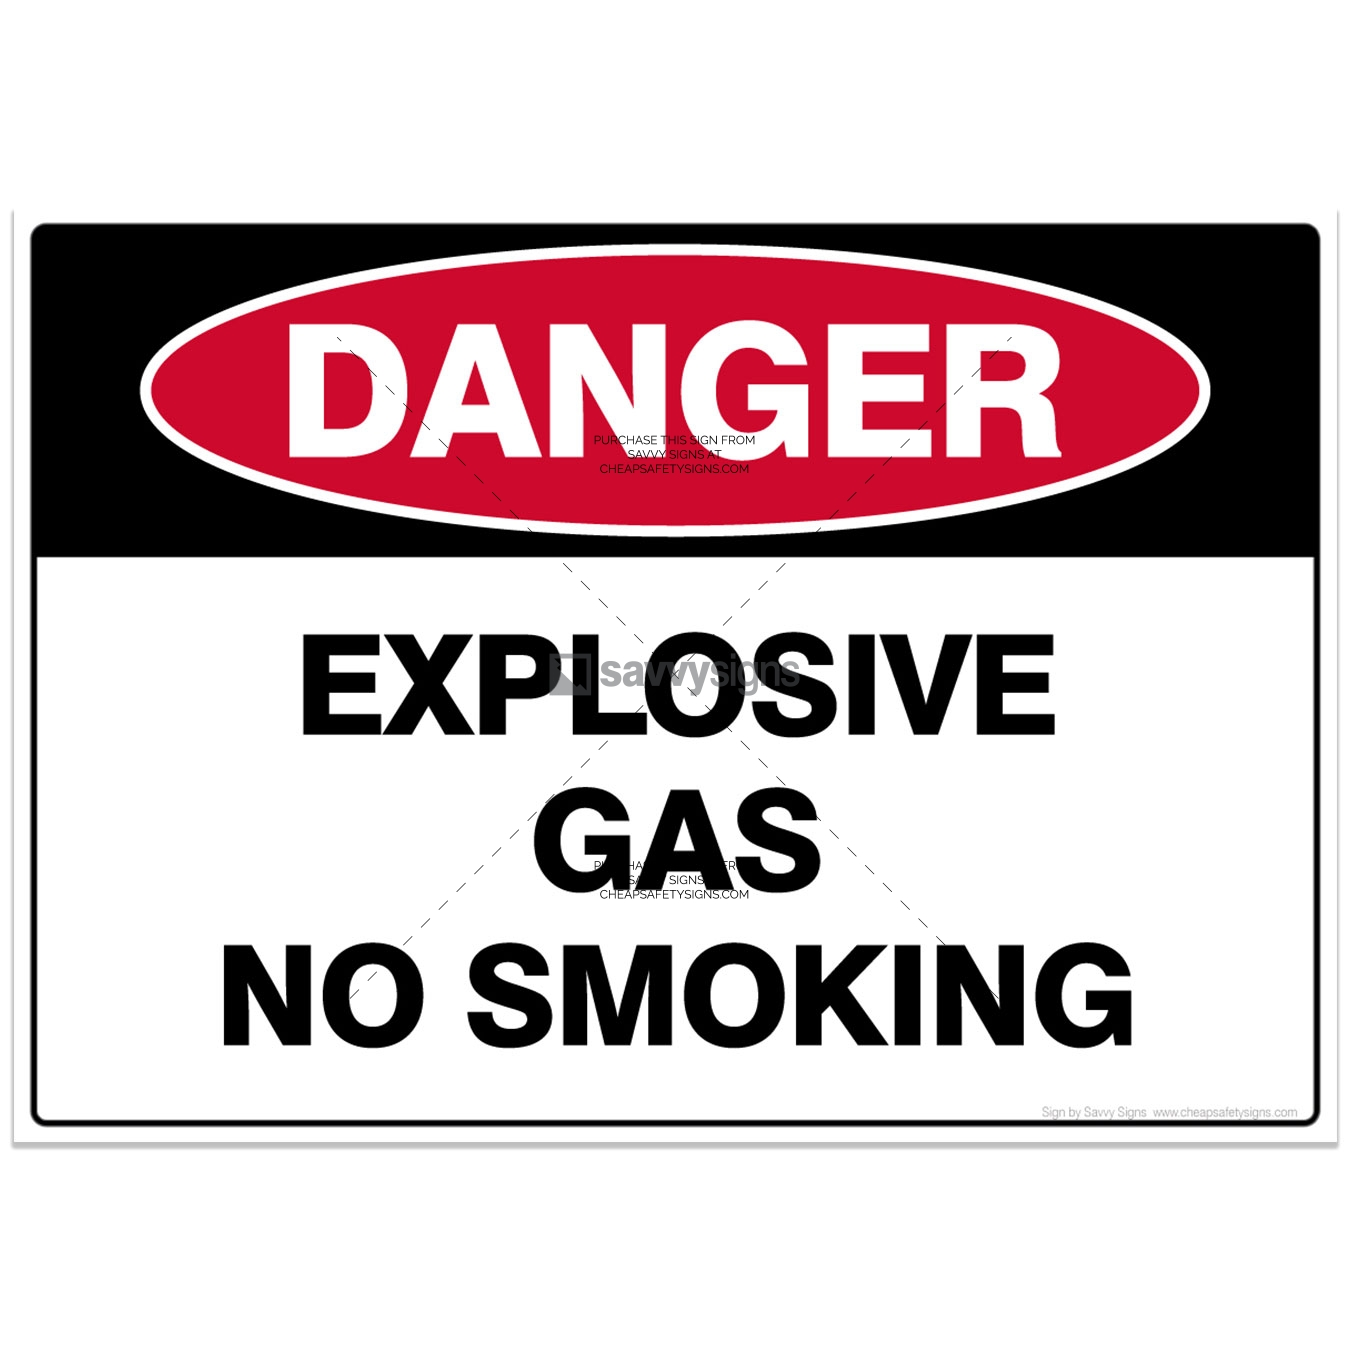 SSDAN3043-DANGER-Workplace-Safety-Signs_Savvy-Signs_v4.1